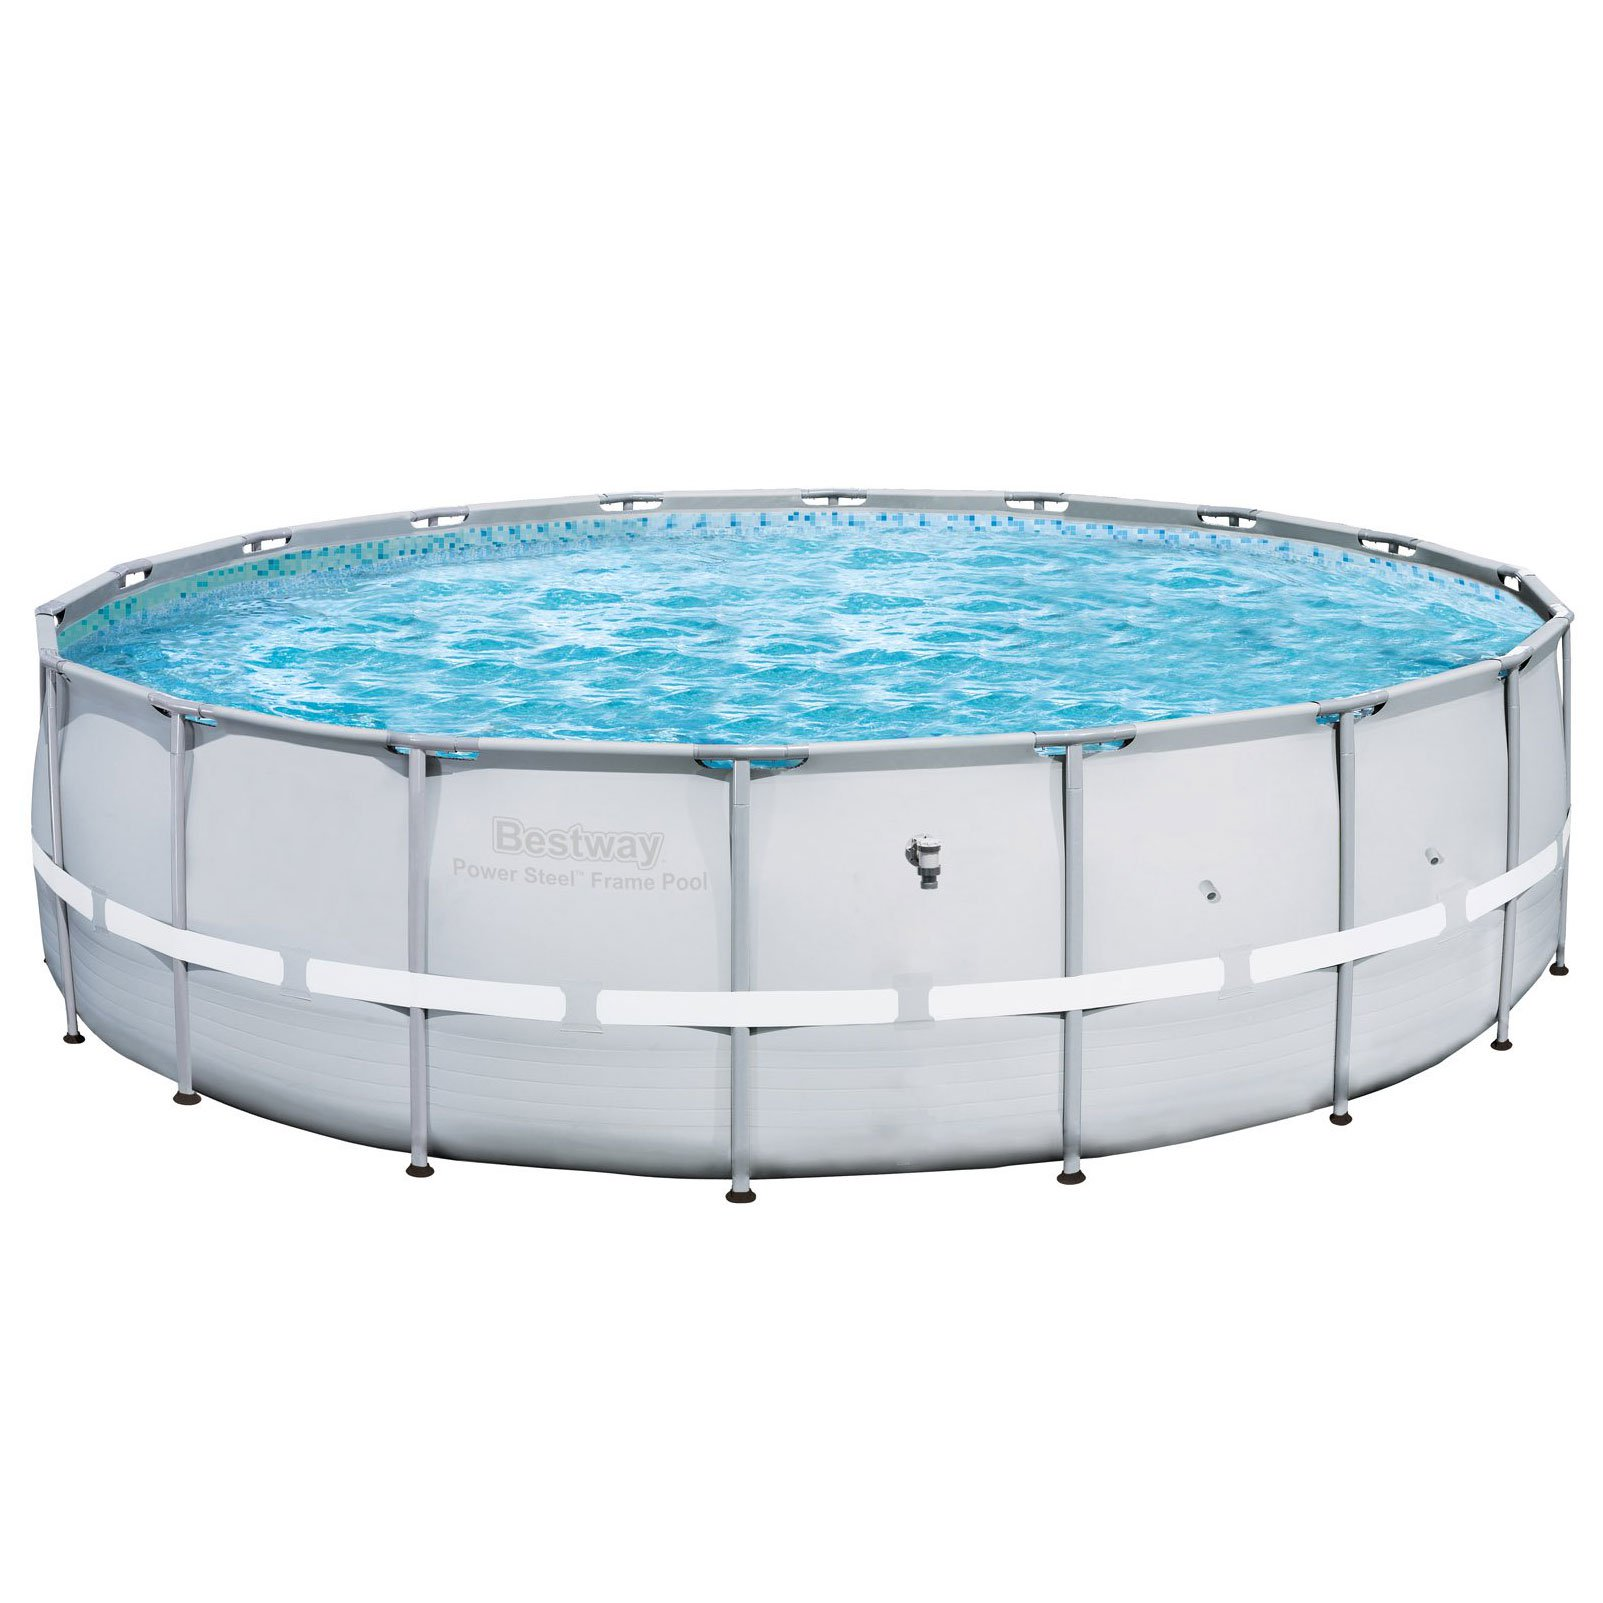 "Bestway 18' x 52"" Power Steel Pro Frame Above Ground Swimming Pool (Pool Only)"